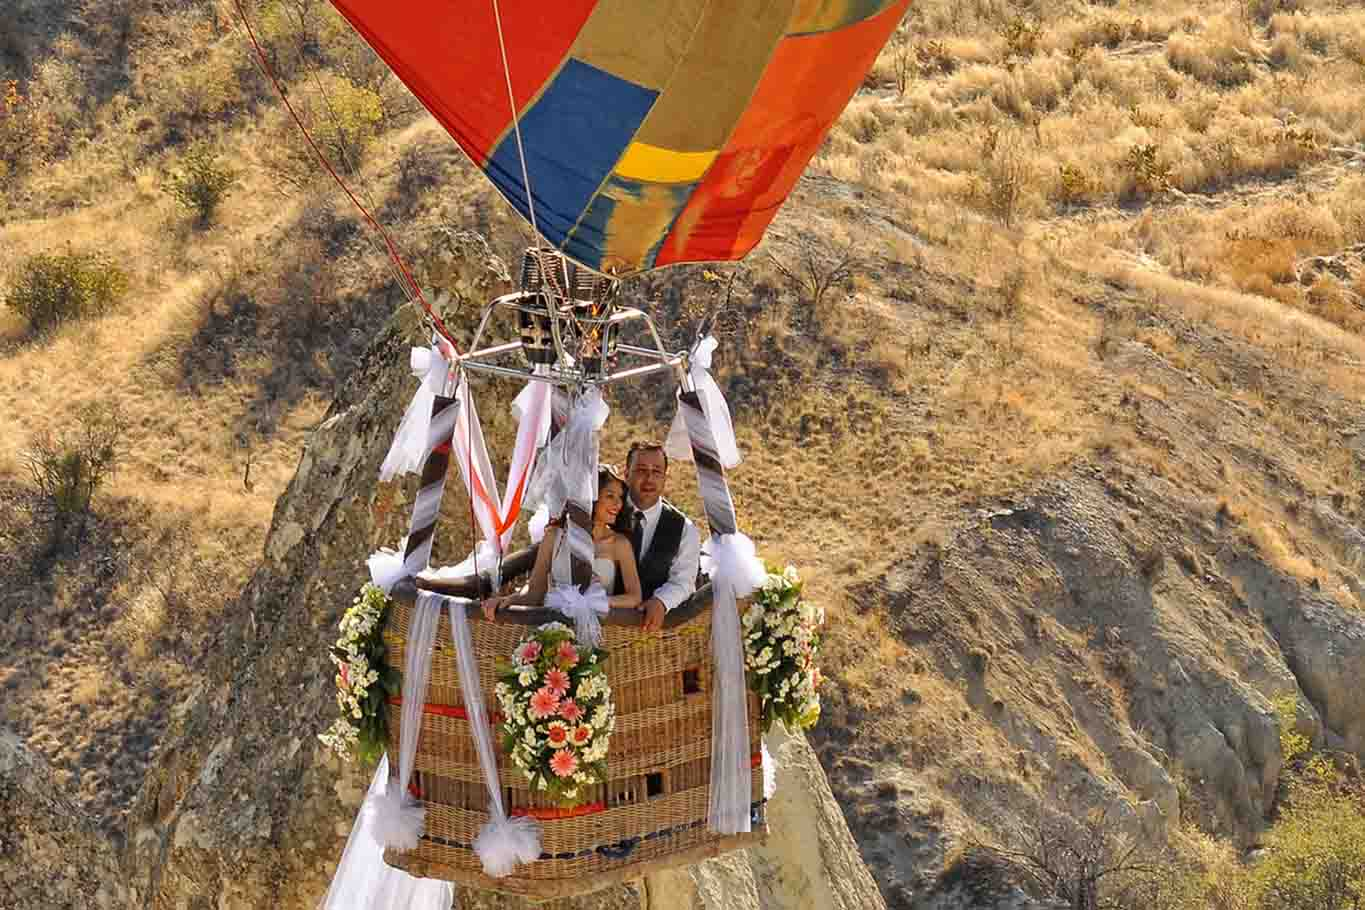 Ballooning wedding flight